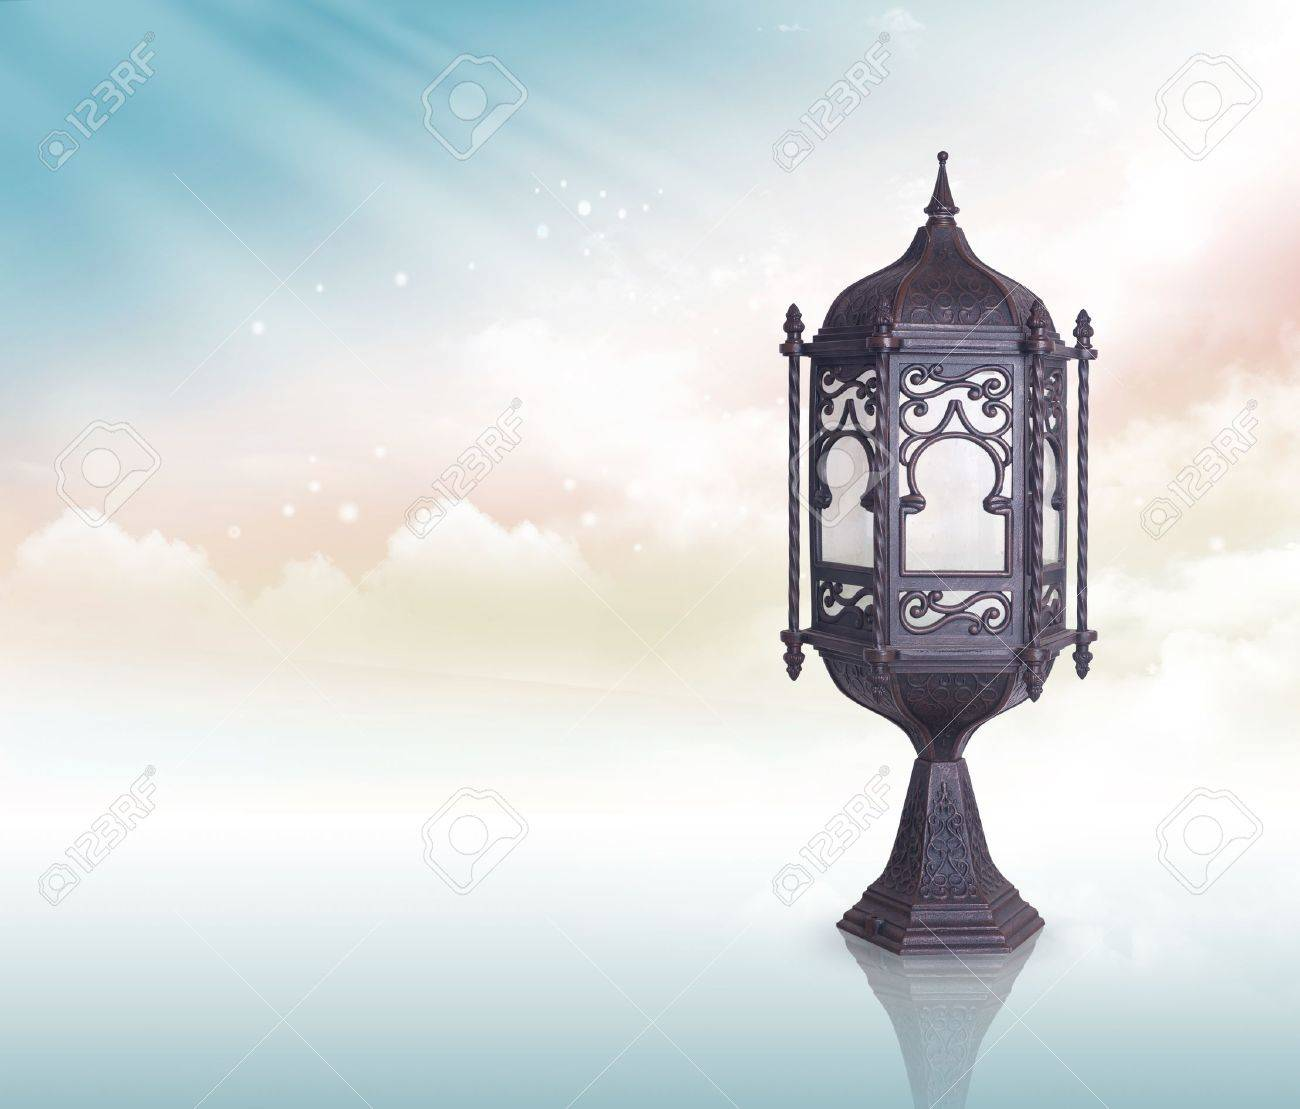 ramadan lamp greeting concept stock photo picture and royalty free image image 16564268 ramadan lamp greeting concept